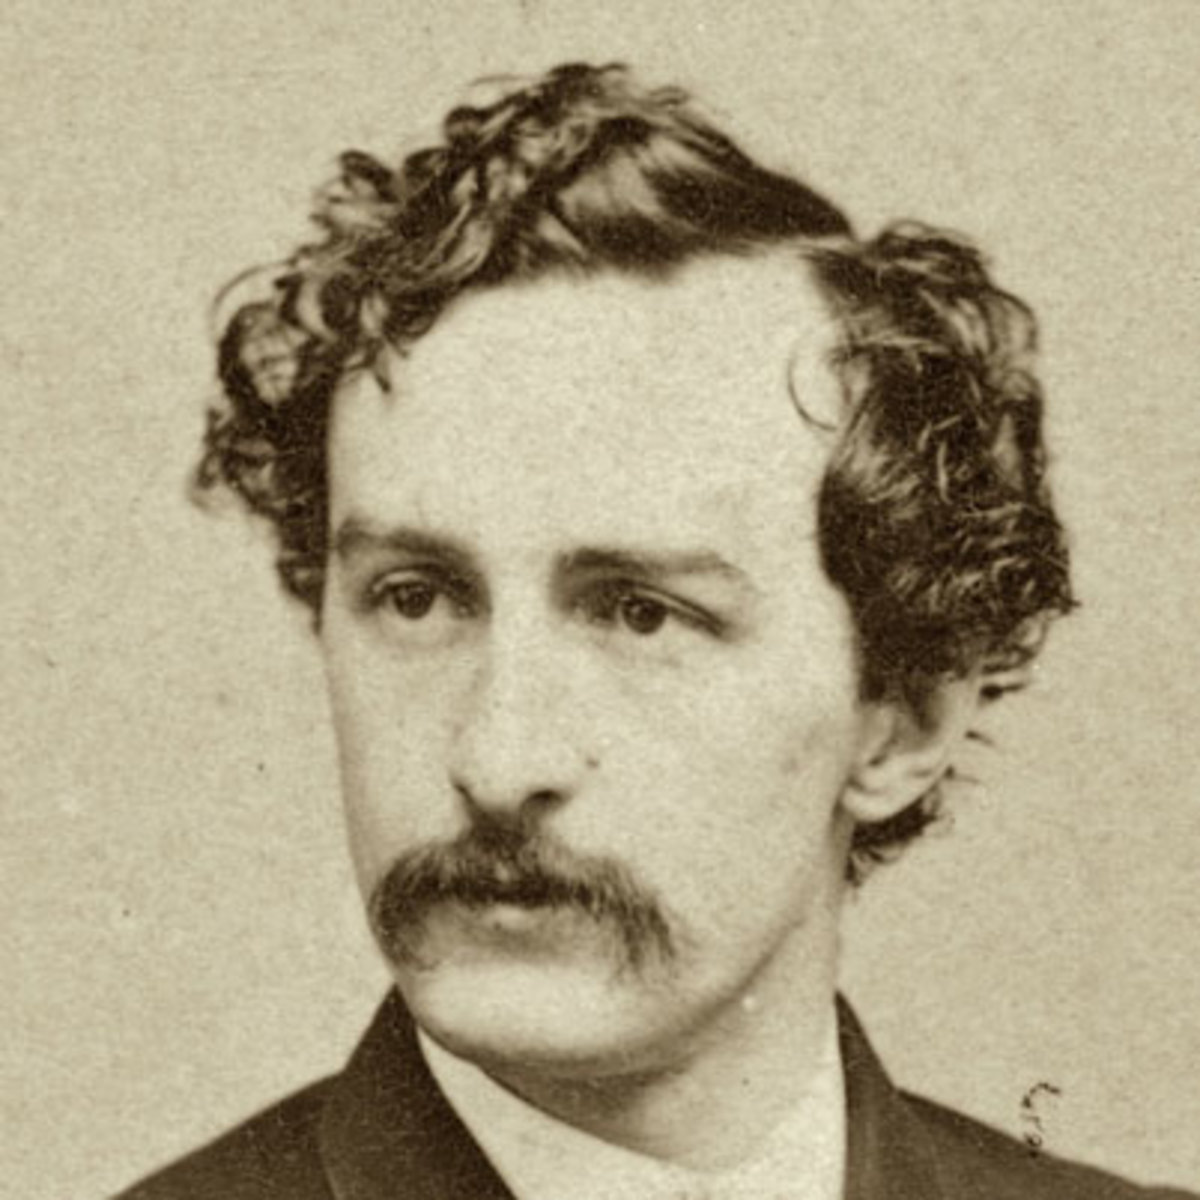 the life of john wilkes booth The life, crime and capture of john wilkes booth - free download as word doc (doc / docx), pdf file (pdf), text file (txt) or read online for free.